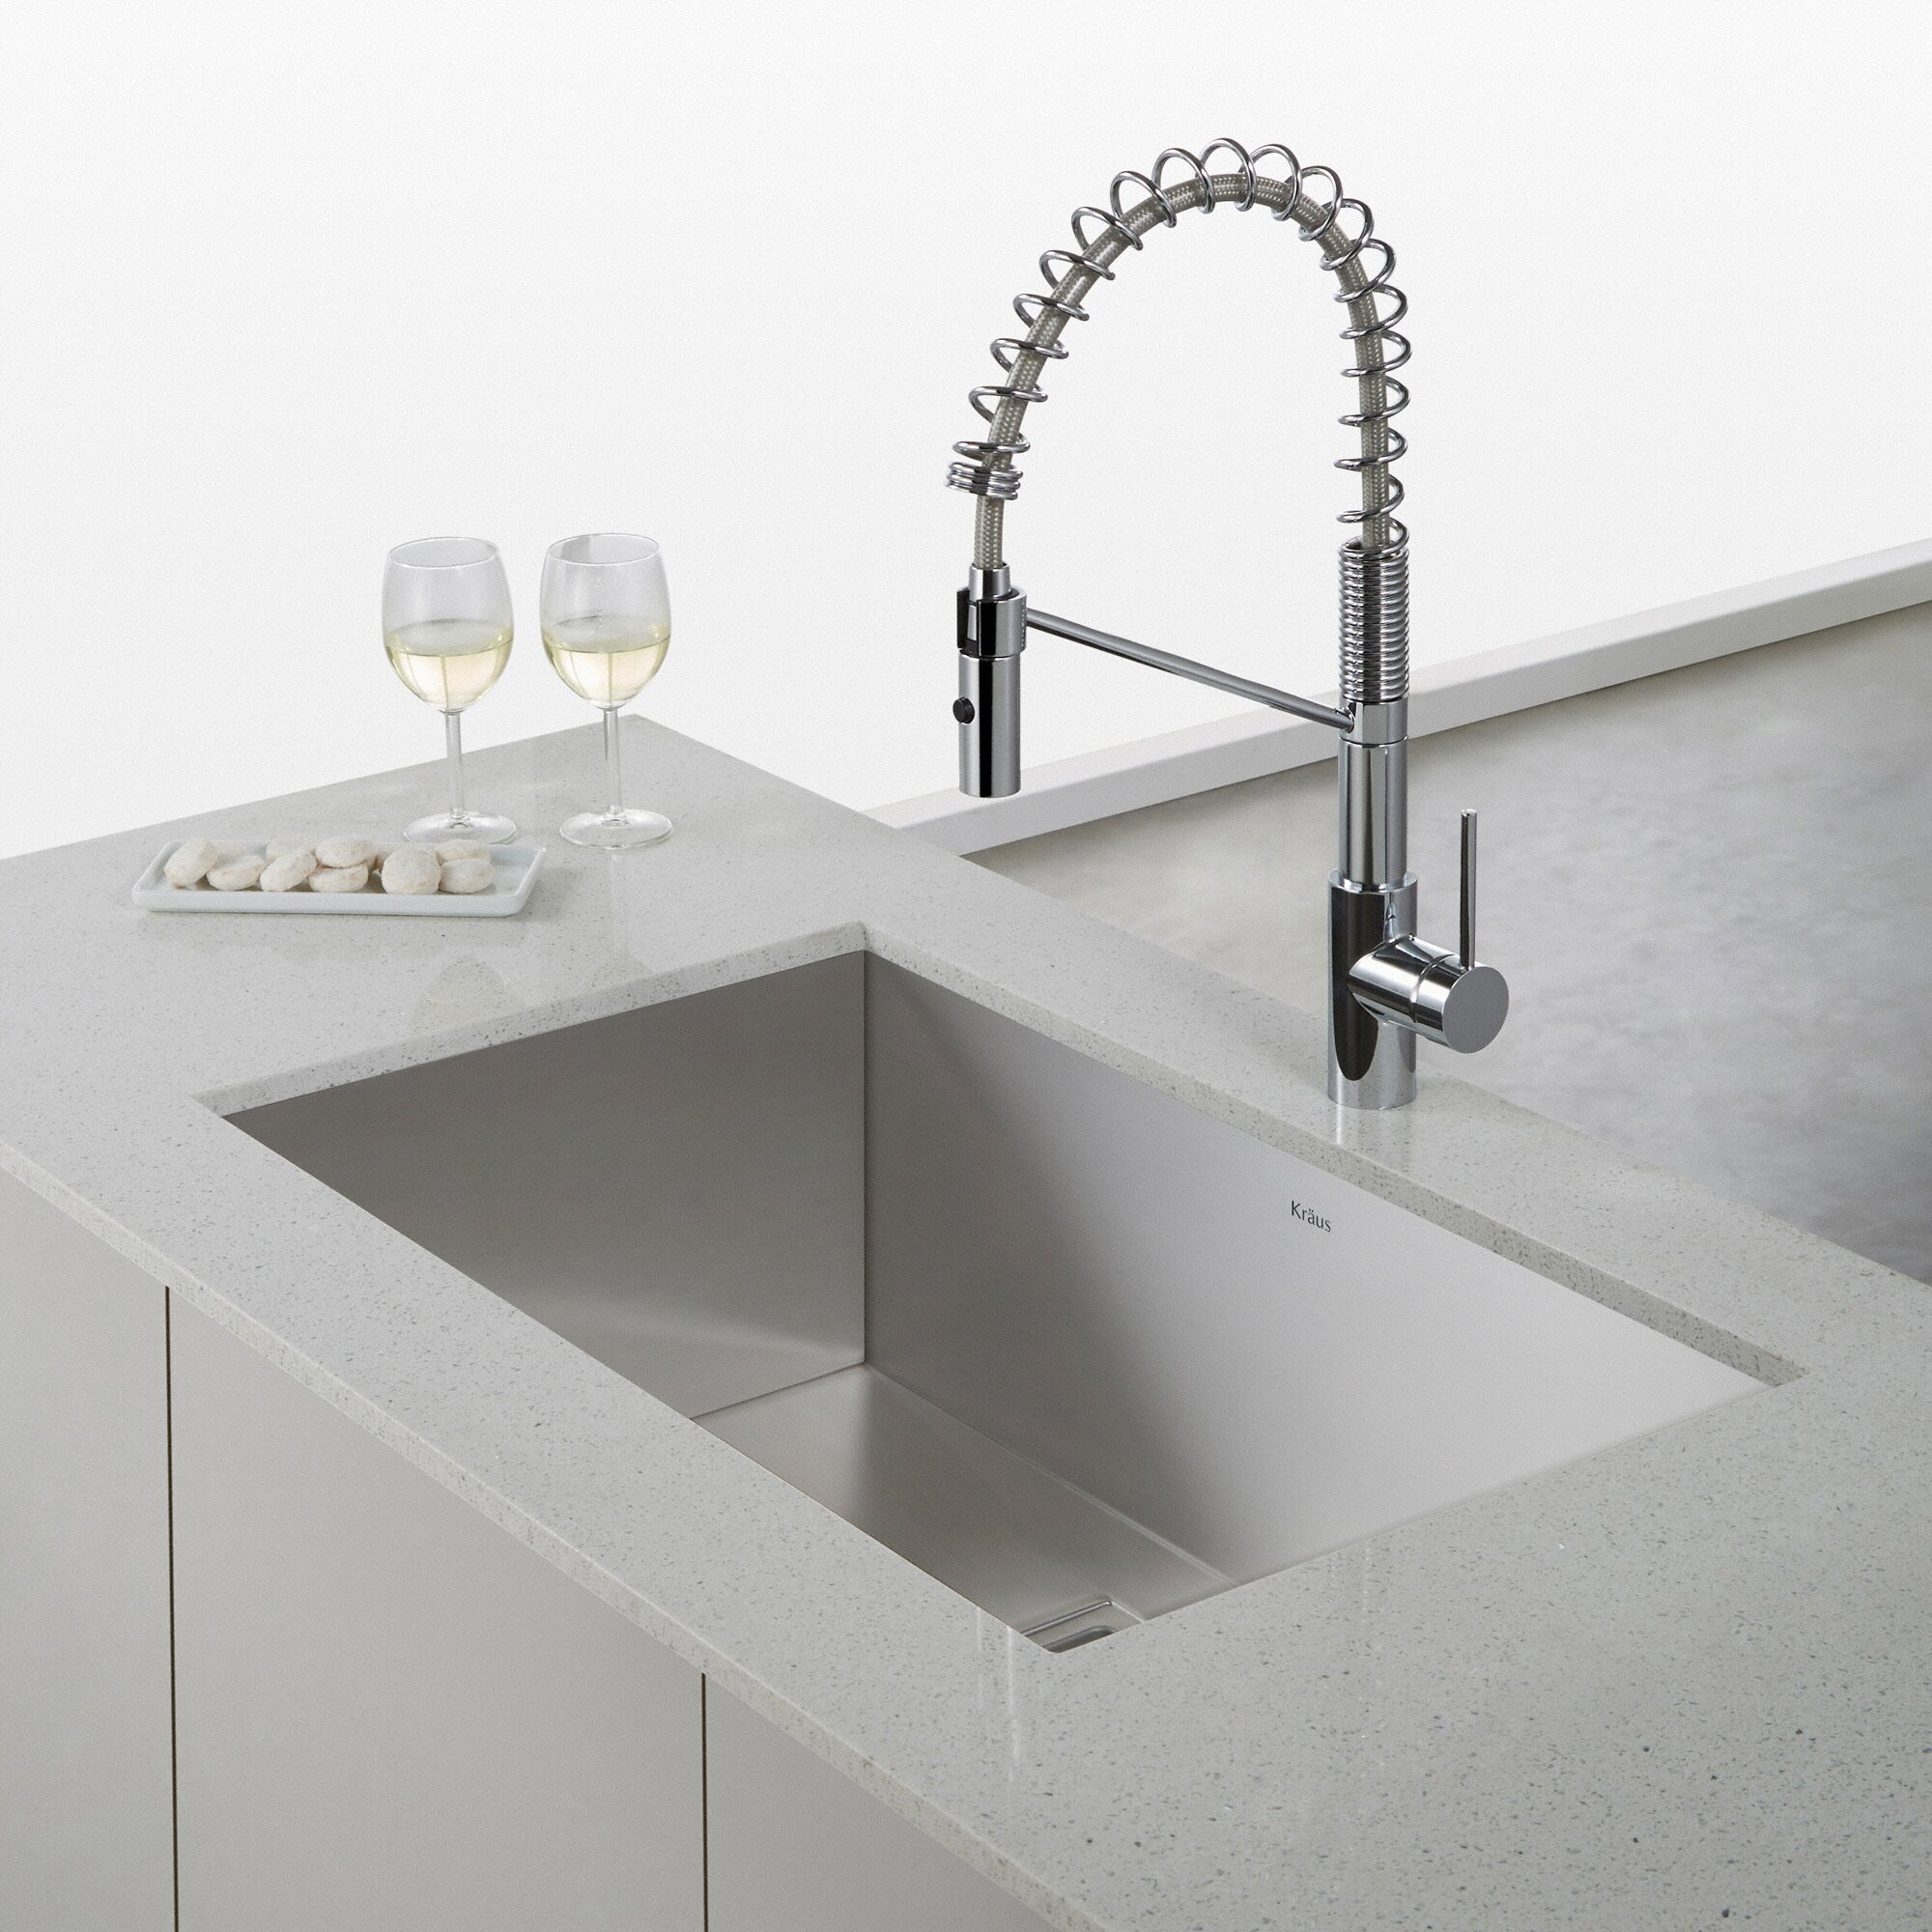 Industrial Style Kitchen Faucet: Kraus Oletto™ Single Lever Commercial Style Kitchen Faucet